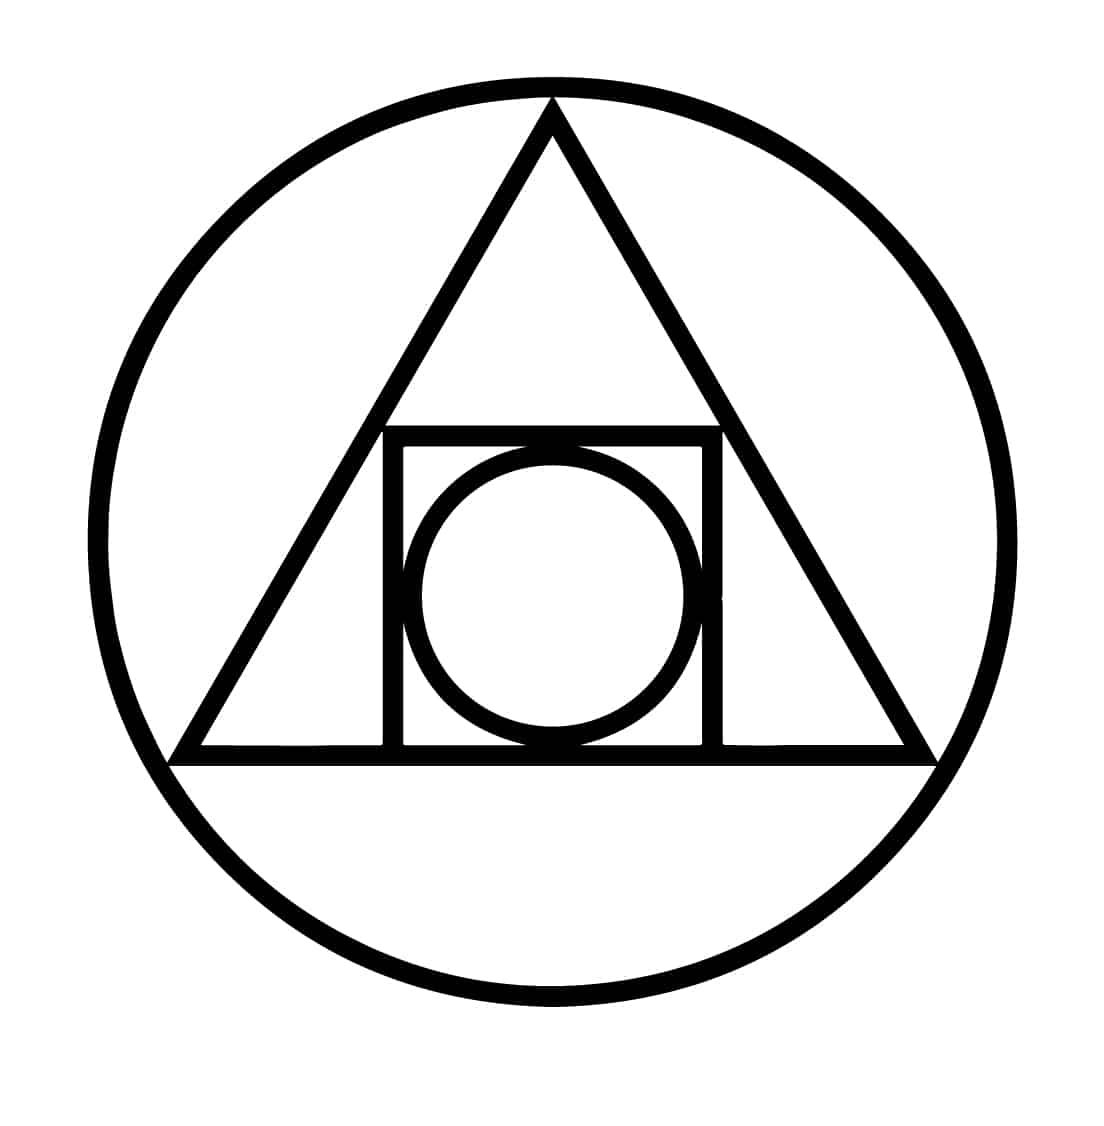 Alchemy symbols and their meanings the extended list of alchemy symbols and their meanings the extended list of alchemical symbols biocorpaavc